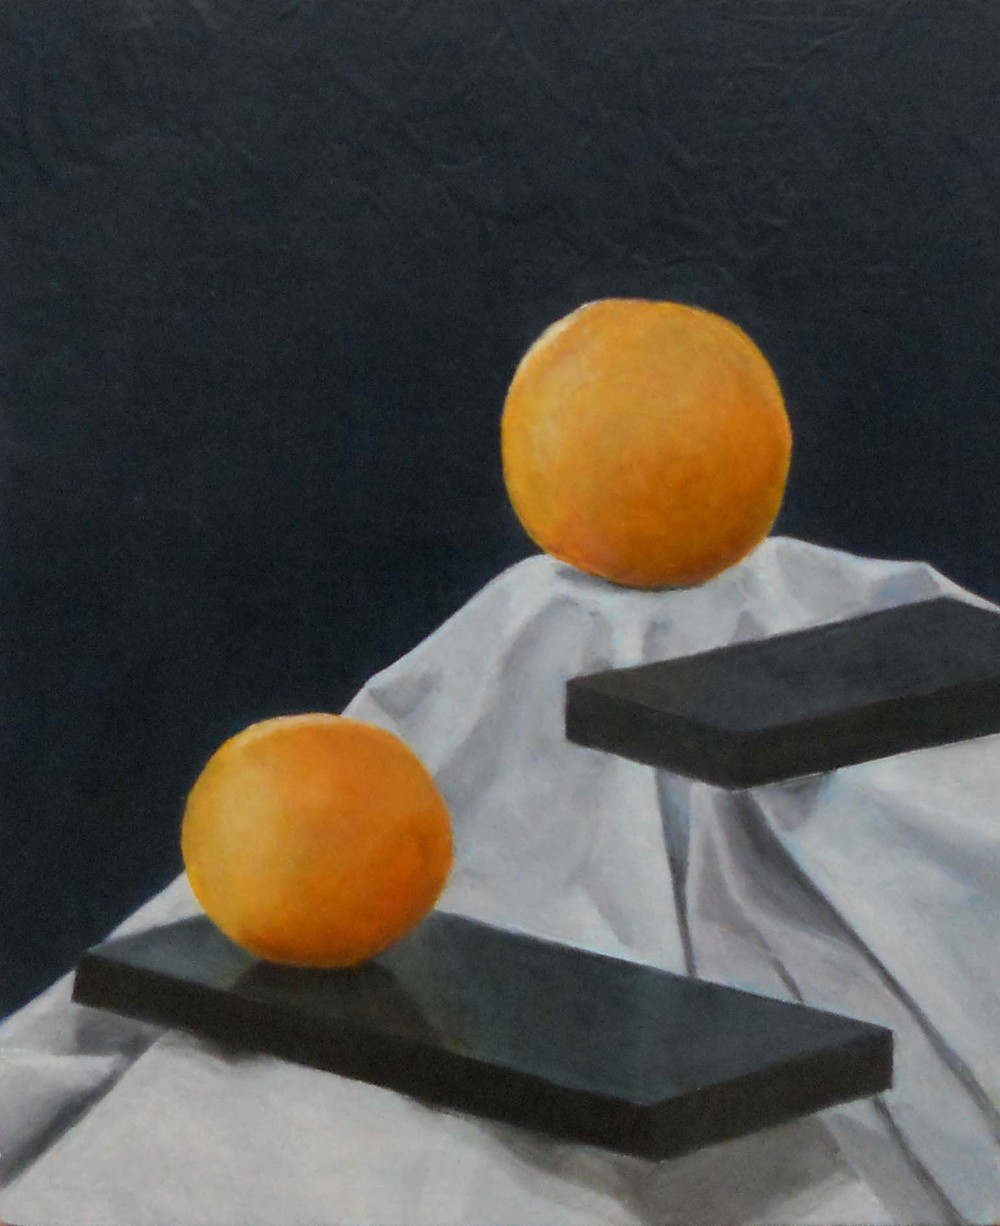 Still Life with Planks & Oranges